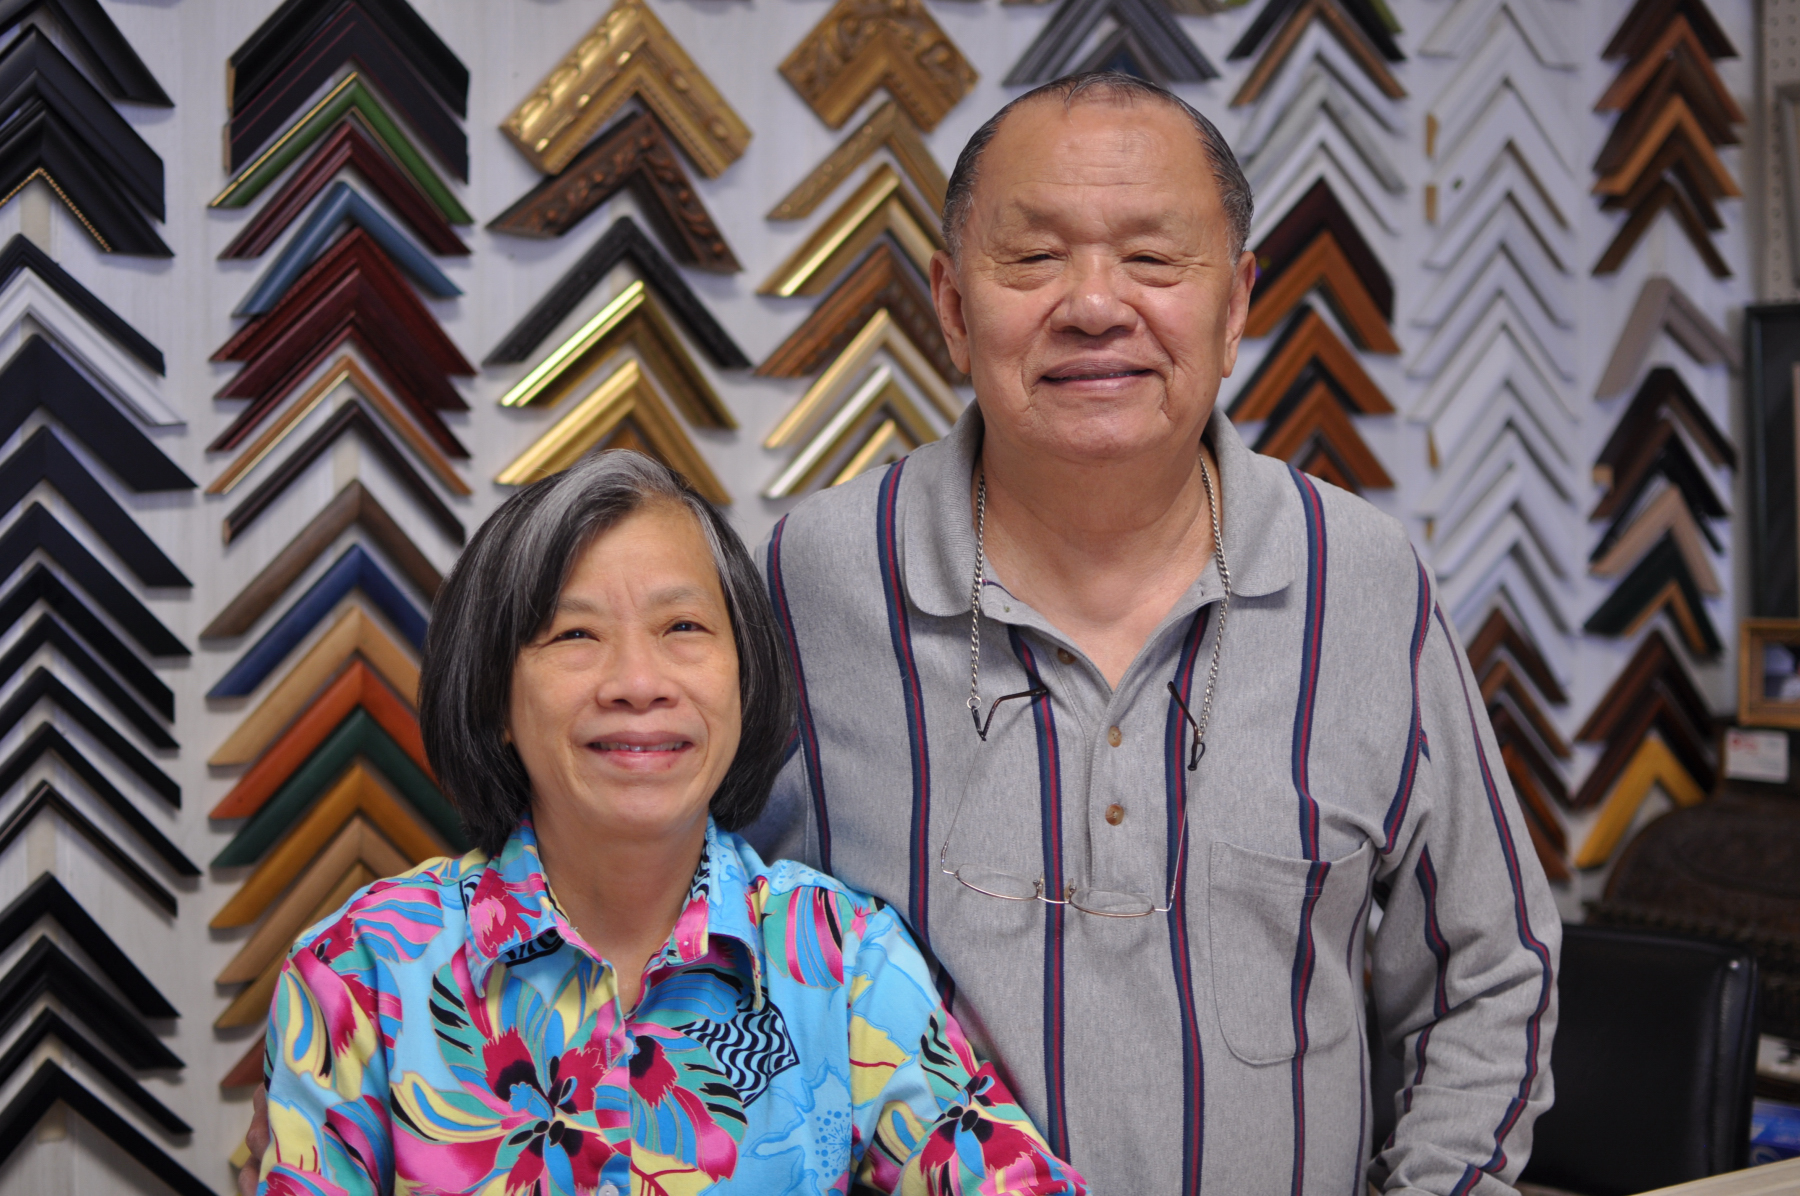 Our story - Jack and Kitty have a collective 45 years of experience crafting beautiful custom frames.Jack is a watercolor artist and cook, specializing in traditional Chinese cuisine. Kitty is a dedicated gardener who enjoys growing vegetables from her native Thailand. They are proud parents to Joy, a freshman at Northwestern.